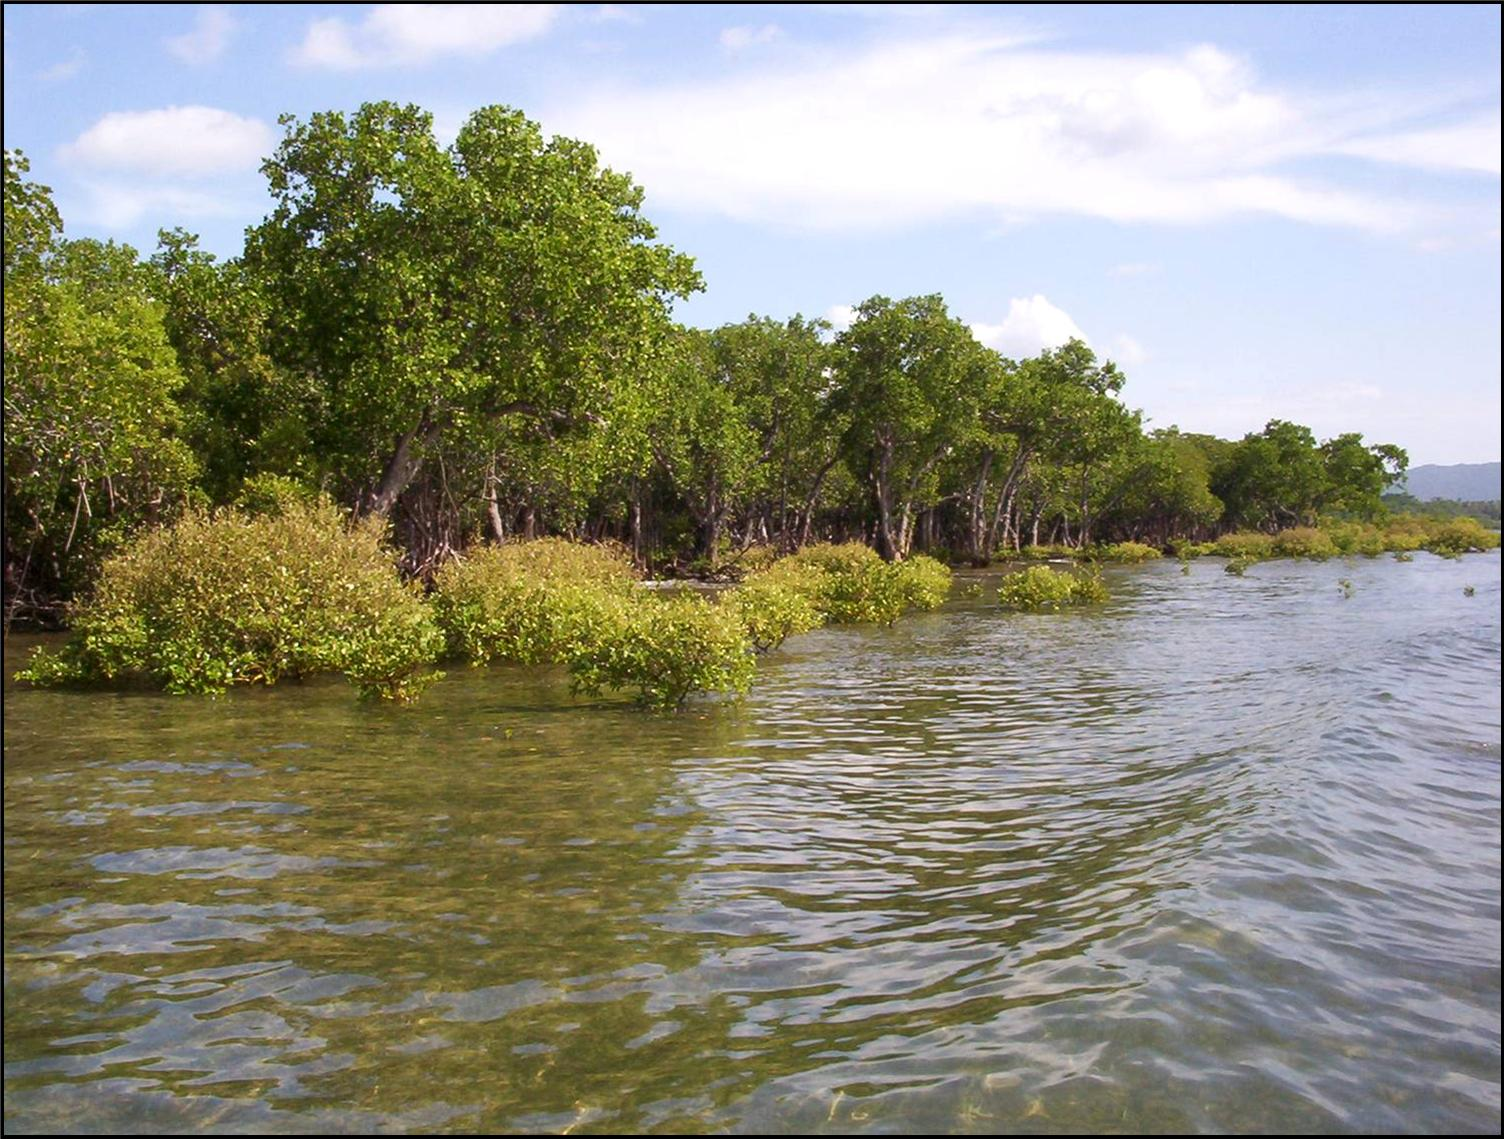 Mangroves - Their destruction contributes to a decline in biodiversity